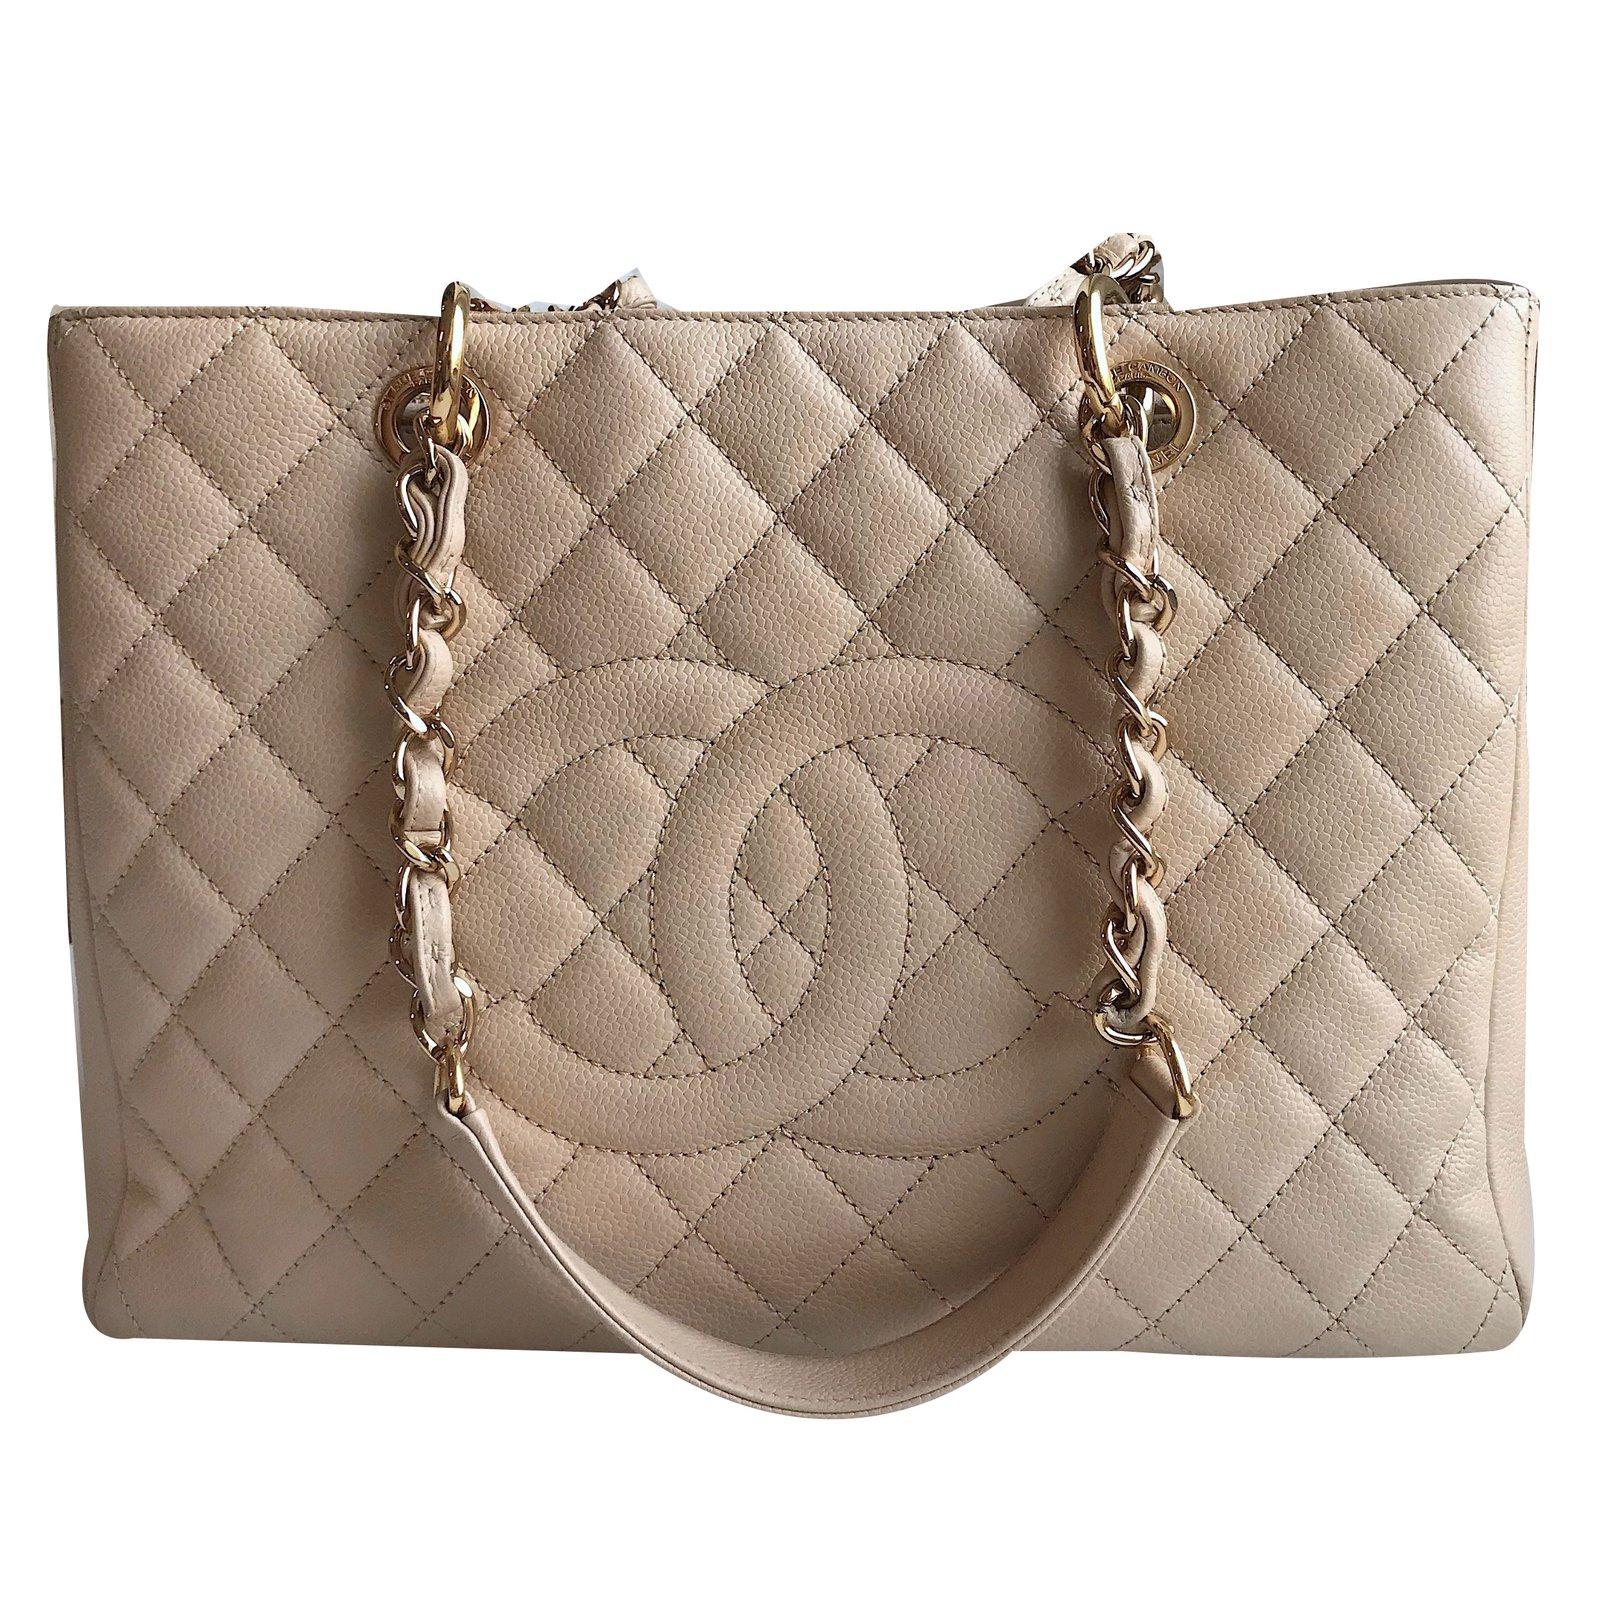 aeb24ef62659 Chanel Chanel GST Grand Shopping Tote Handbags Leather Beige ref.69959